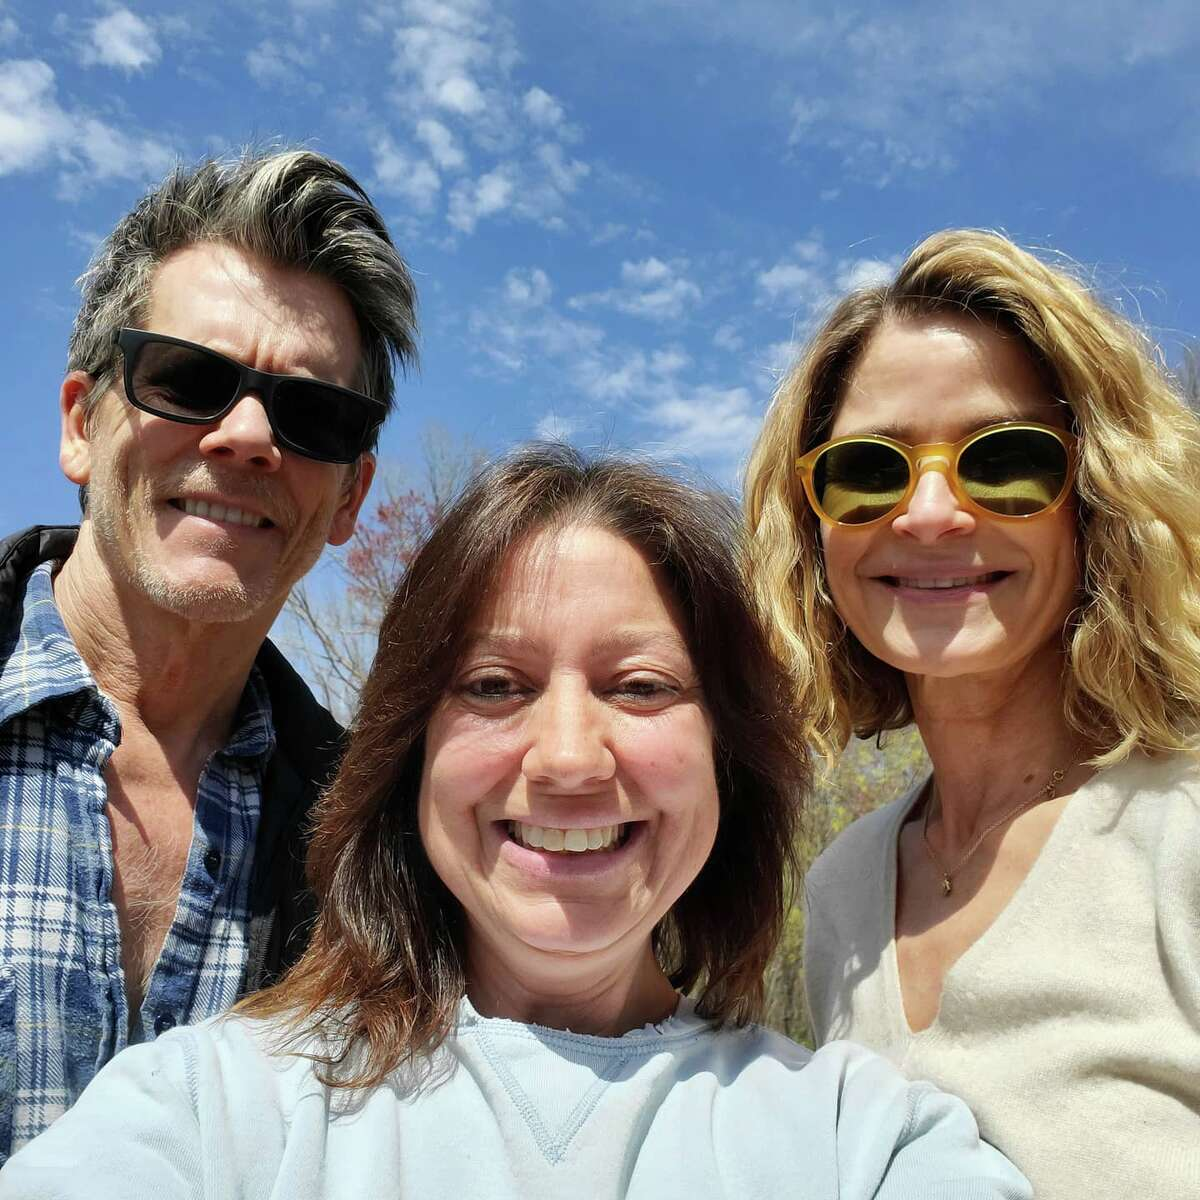 Actors Kevin Bacon (left) and Kyra Sedgwick(right) took a selfie with Tracy Longoria, owner of Aussakita Acres Farm in Manchester, Conn. on Tuesday, April 27, 2021. The actors selected two goats from the farm to join the two they purchased from the farm in 2020.